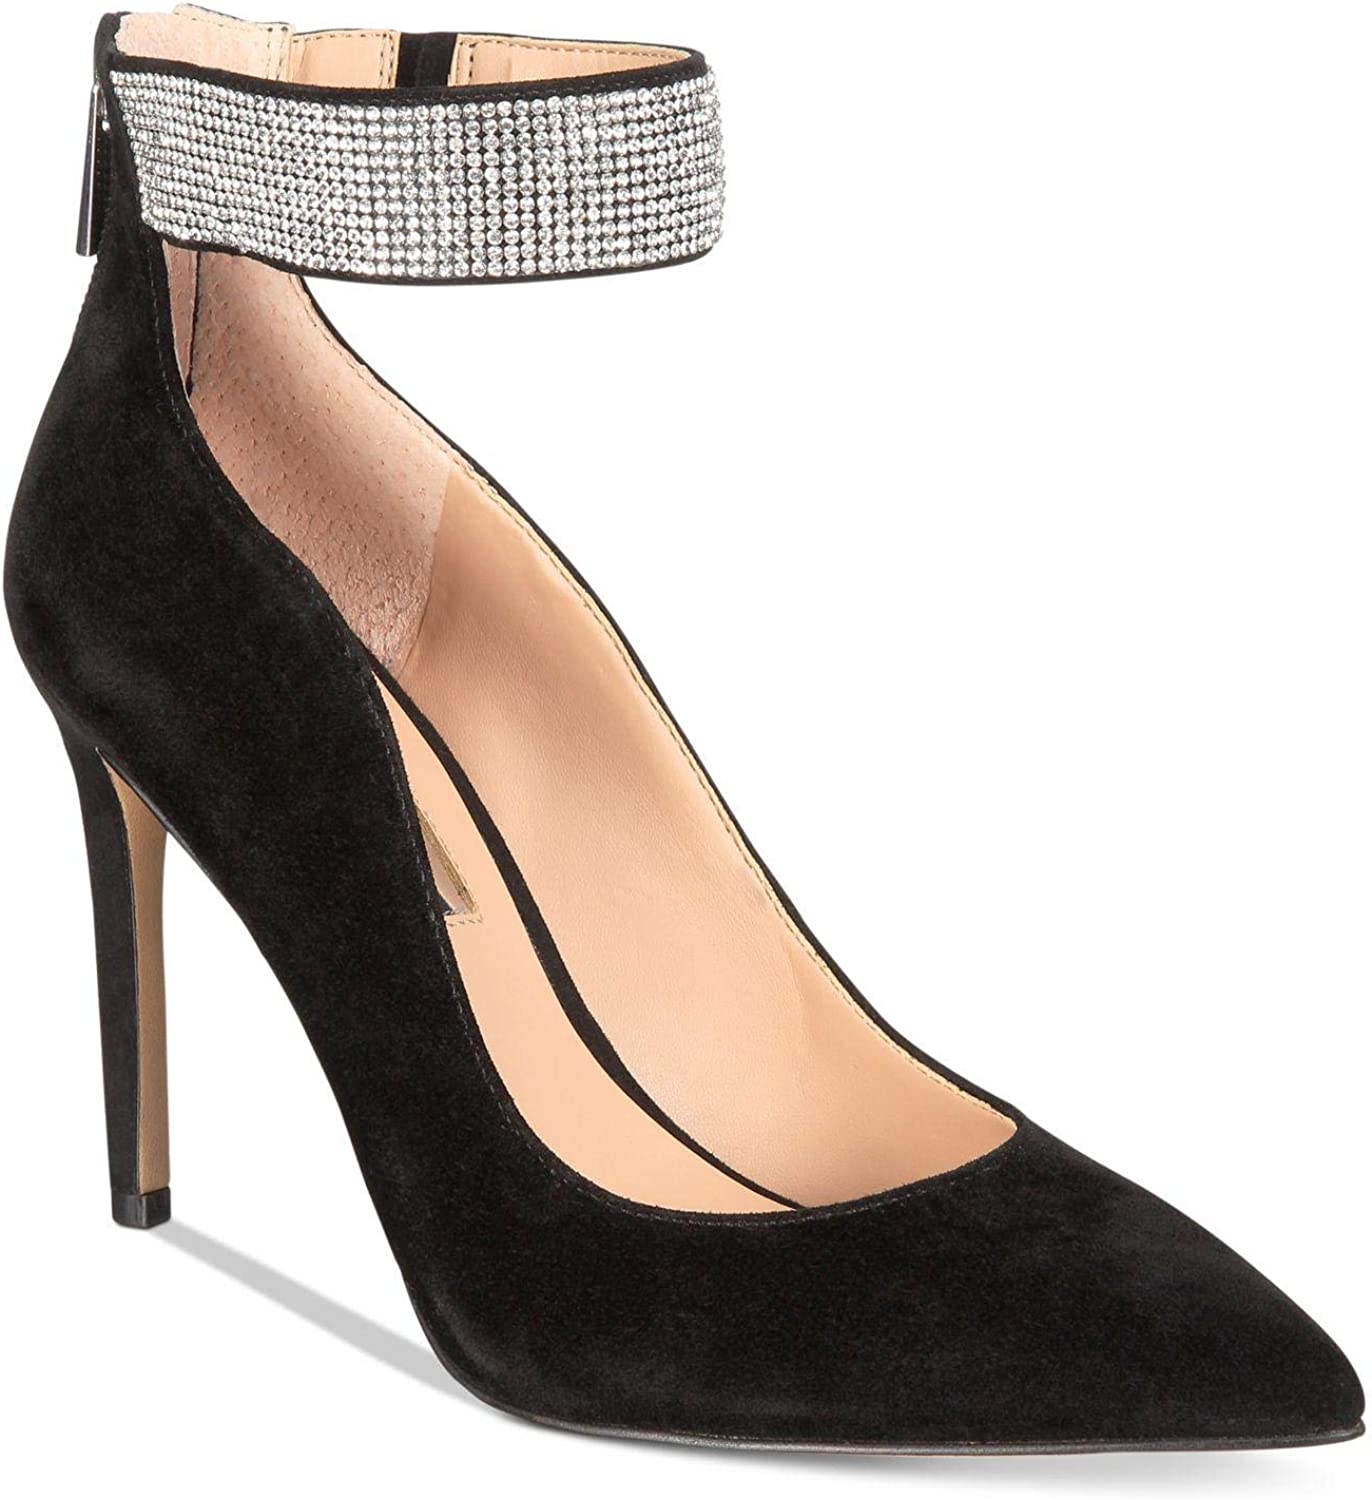 INC International Concepts Womens Kaylynn Leather Pointed Toe Ankle Strap Cla.